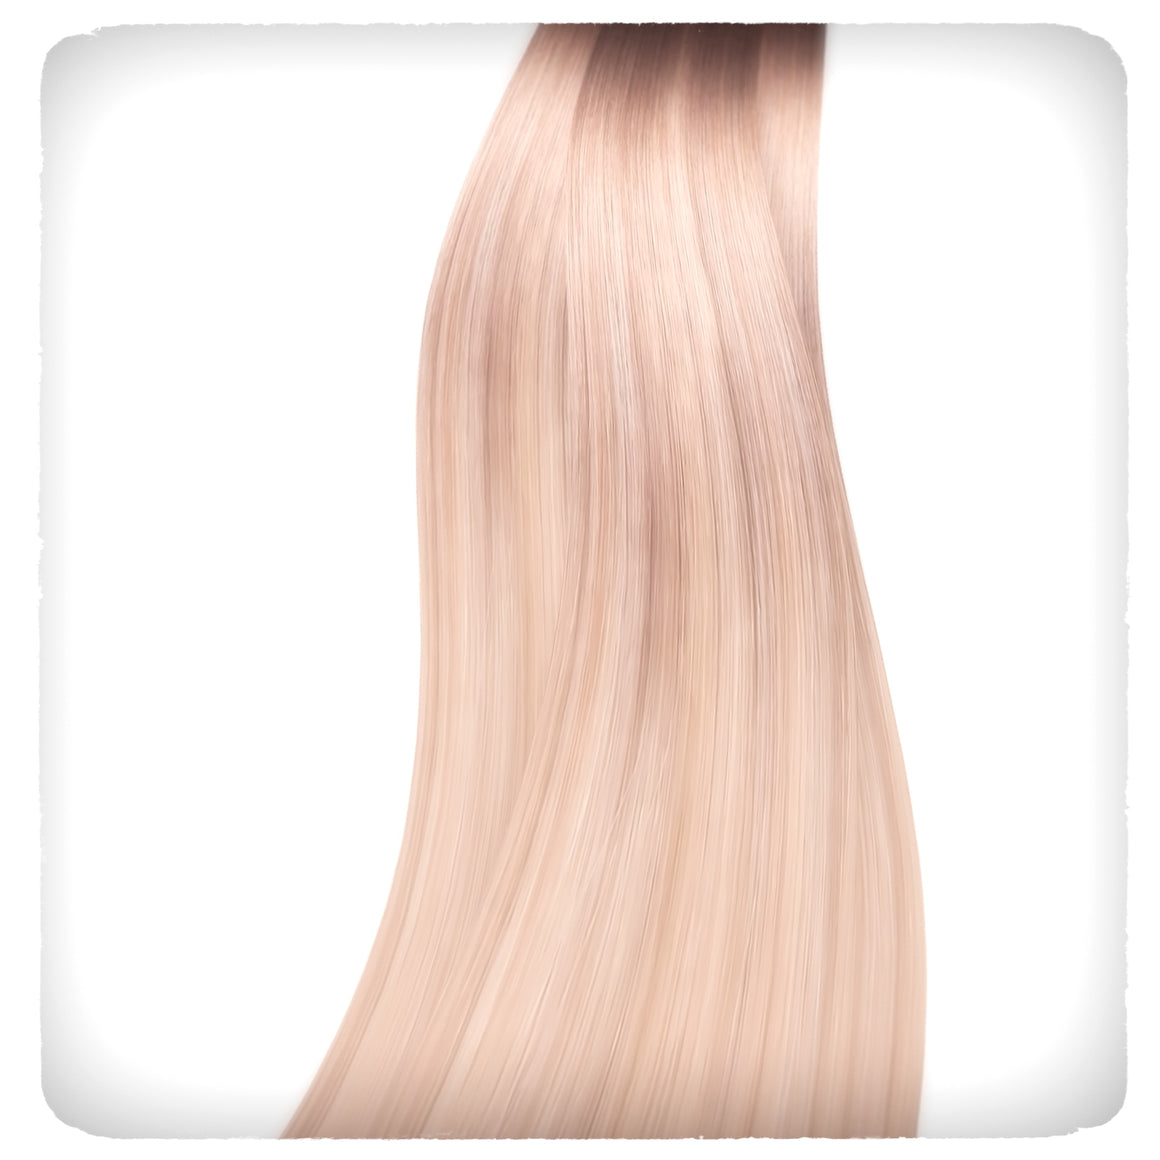 Vixen & Luxe - Gypsy - Clip in Hair Extensions 150g